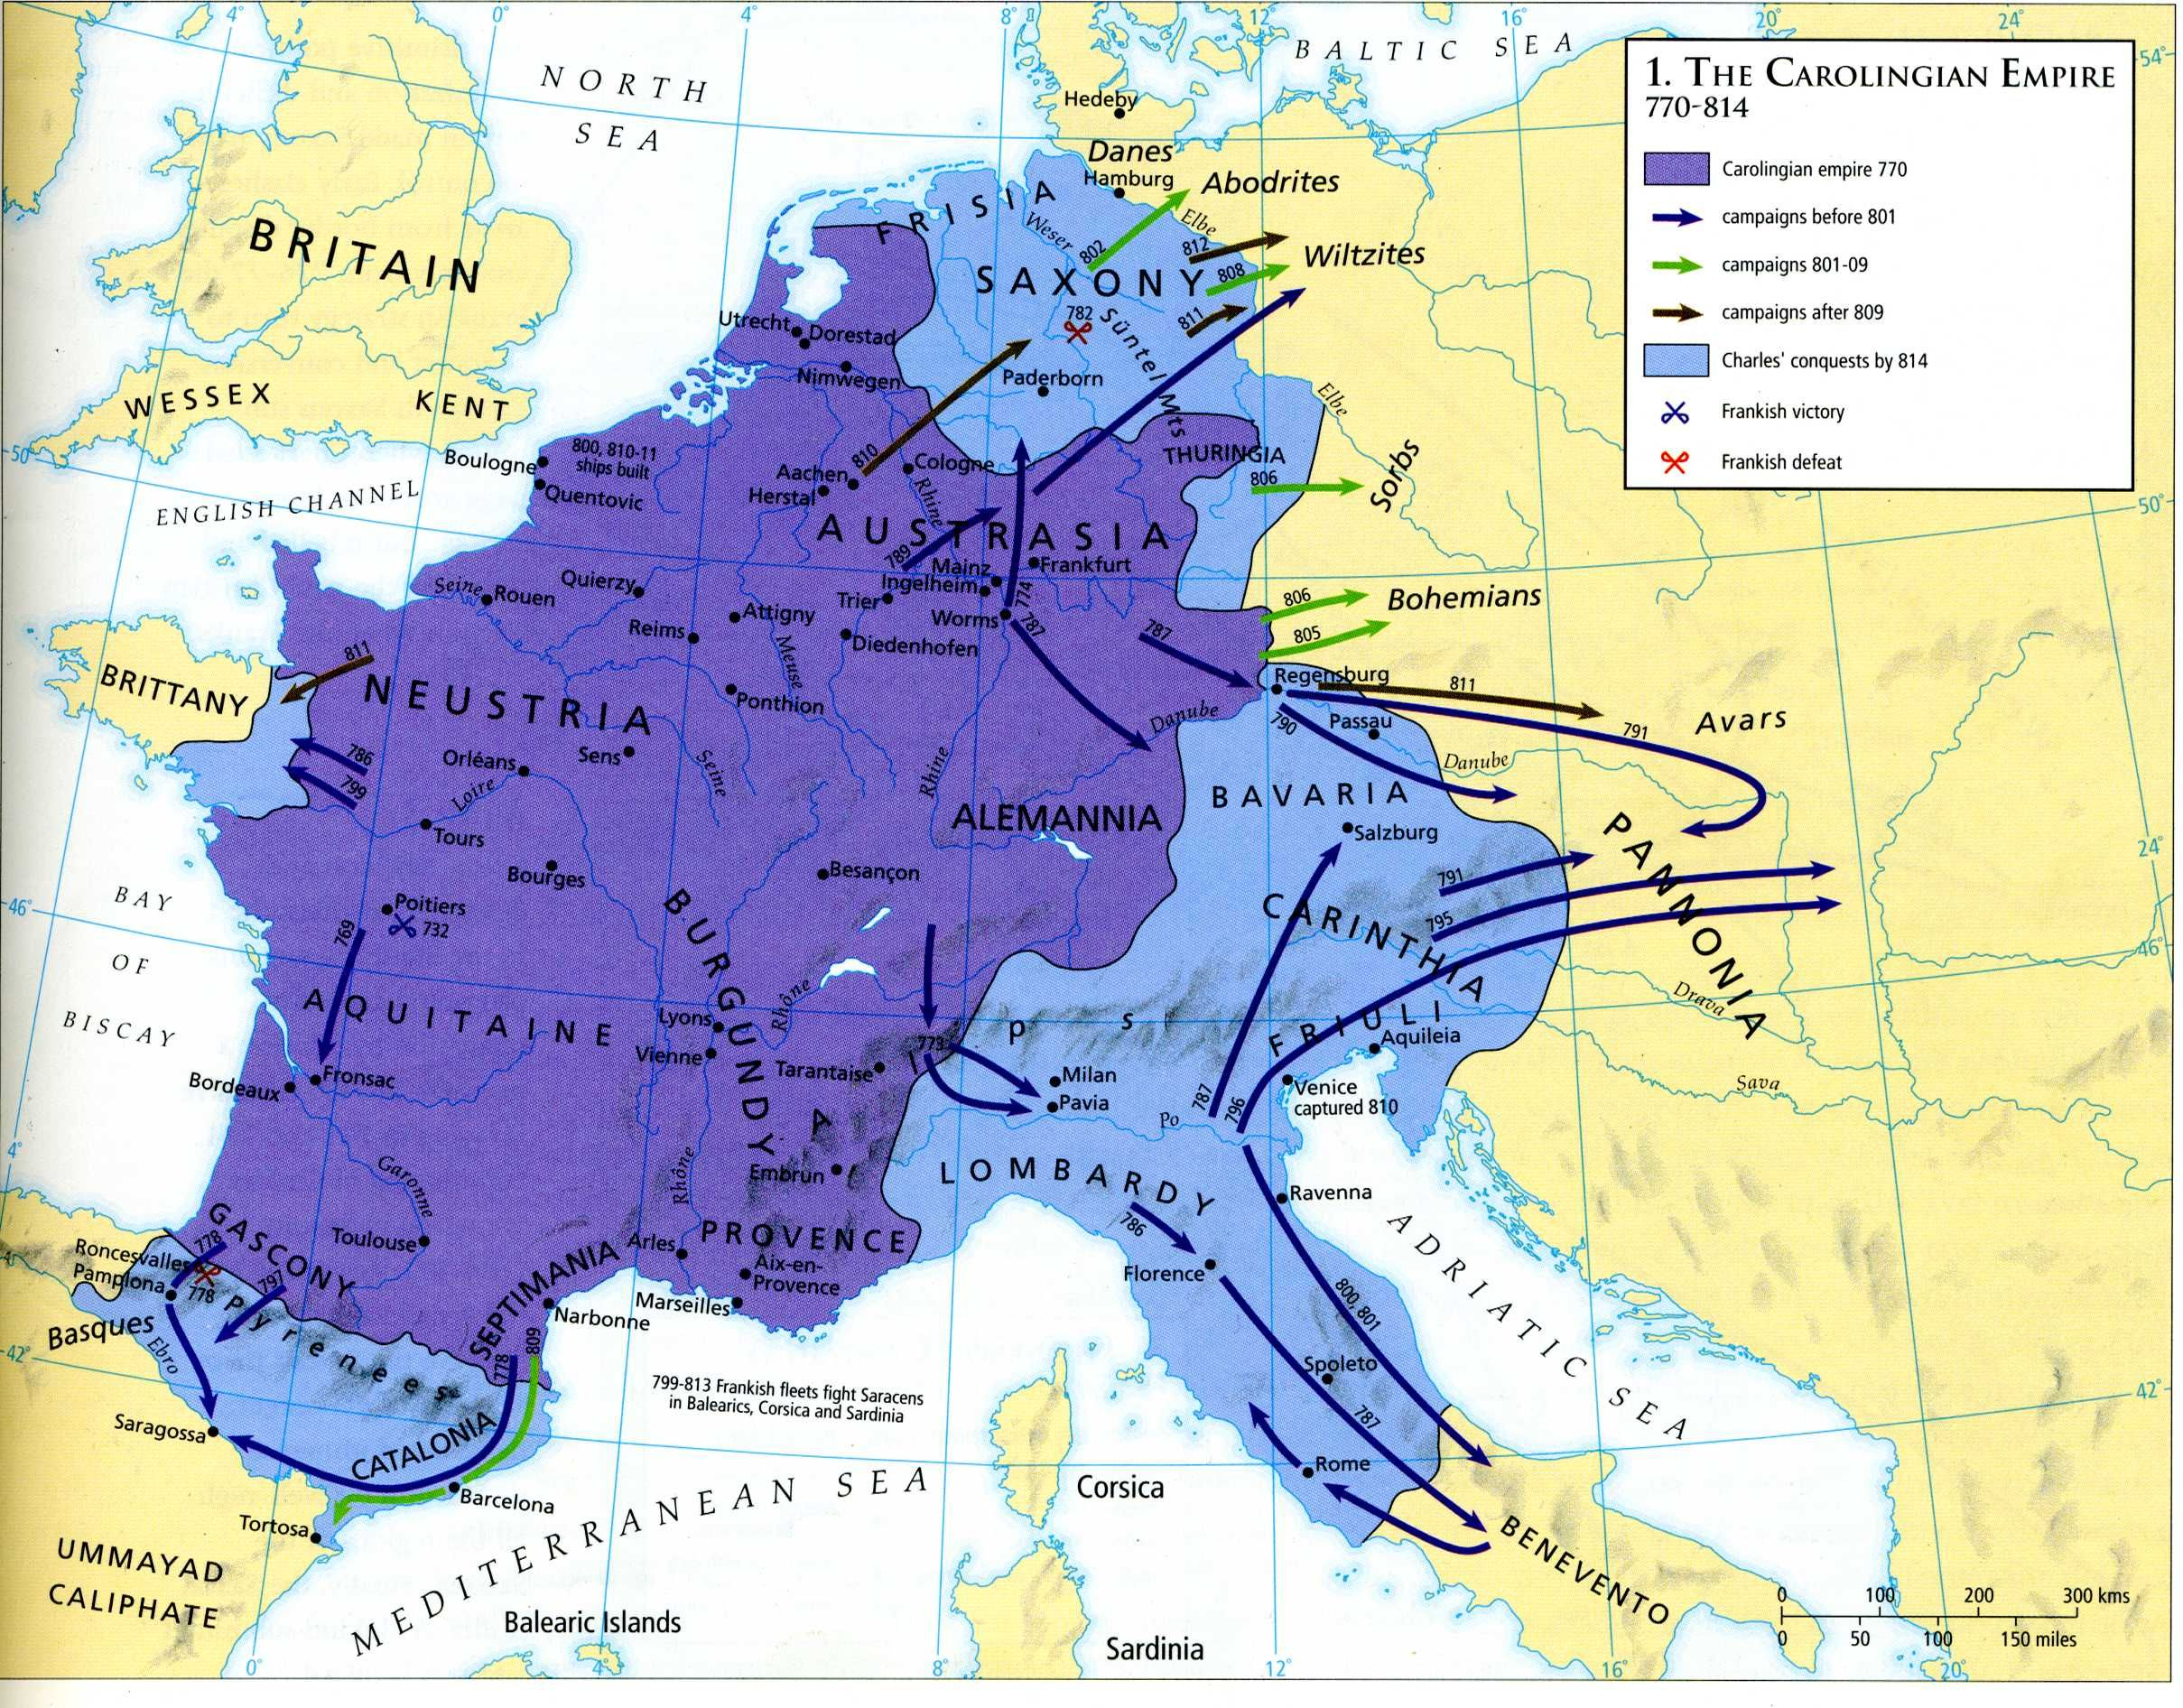 Charlemagne's Empire | Historical maps, Map, History on attila the hun empire map, olmec empire map, pope leo iii, clovis i, great zimbabwe empire map, holy roman emperor, carolingian empire, china empire map, william the conqueror, ottoman empire on map, johannes gutenberg, greece empire map, holy roman empire, frankish empire map, treaty of verdun, shaka zulu empire map, funan empire map, merovingian dynasty, augustine of hippo, louis xiv of france, austria hungary empire map, spartan empire map, ancient rome empire map, charles v, holy roman emperor, ancient persia empire map, battle of tours, carolingian dynasty, viking empire map, 9th century europe map, roman empire outline map, the kingdom of franks map, justinian i, napoleon bonaparte empire map, frank's map, louis the pious, alexander's empire map, charles martel,